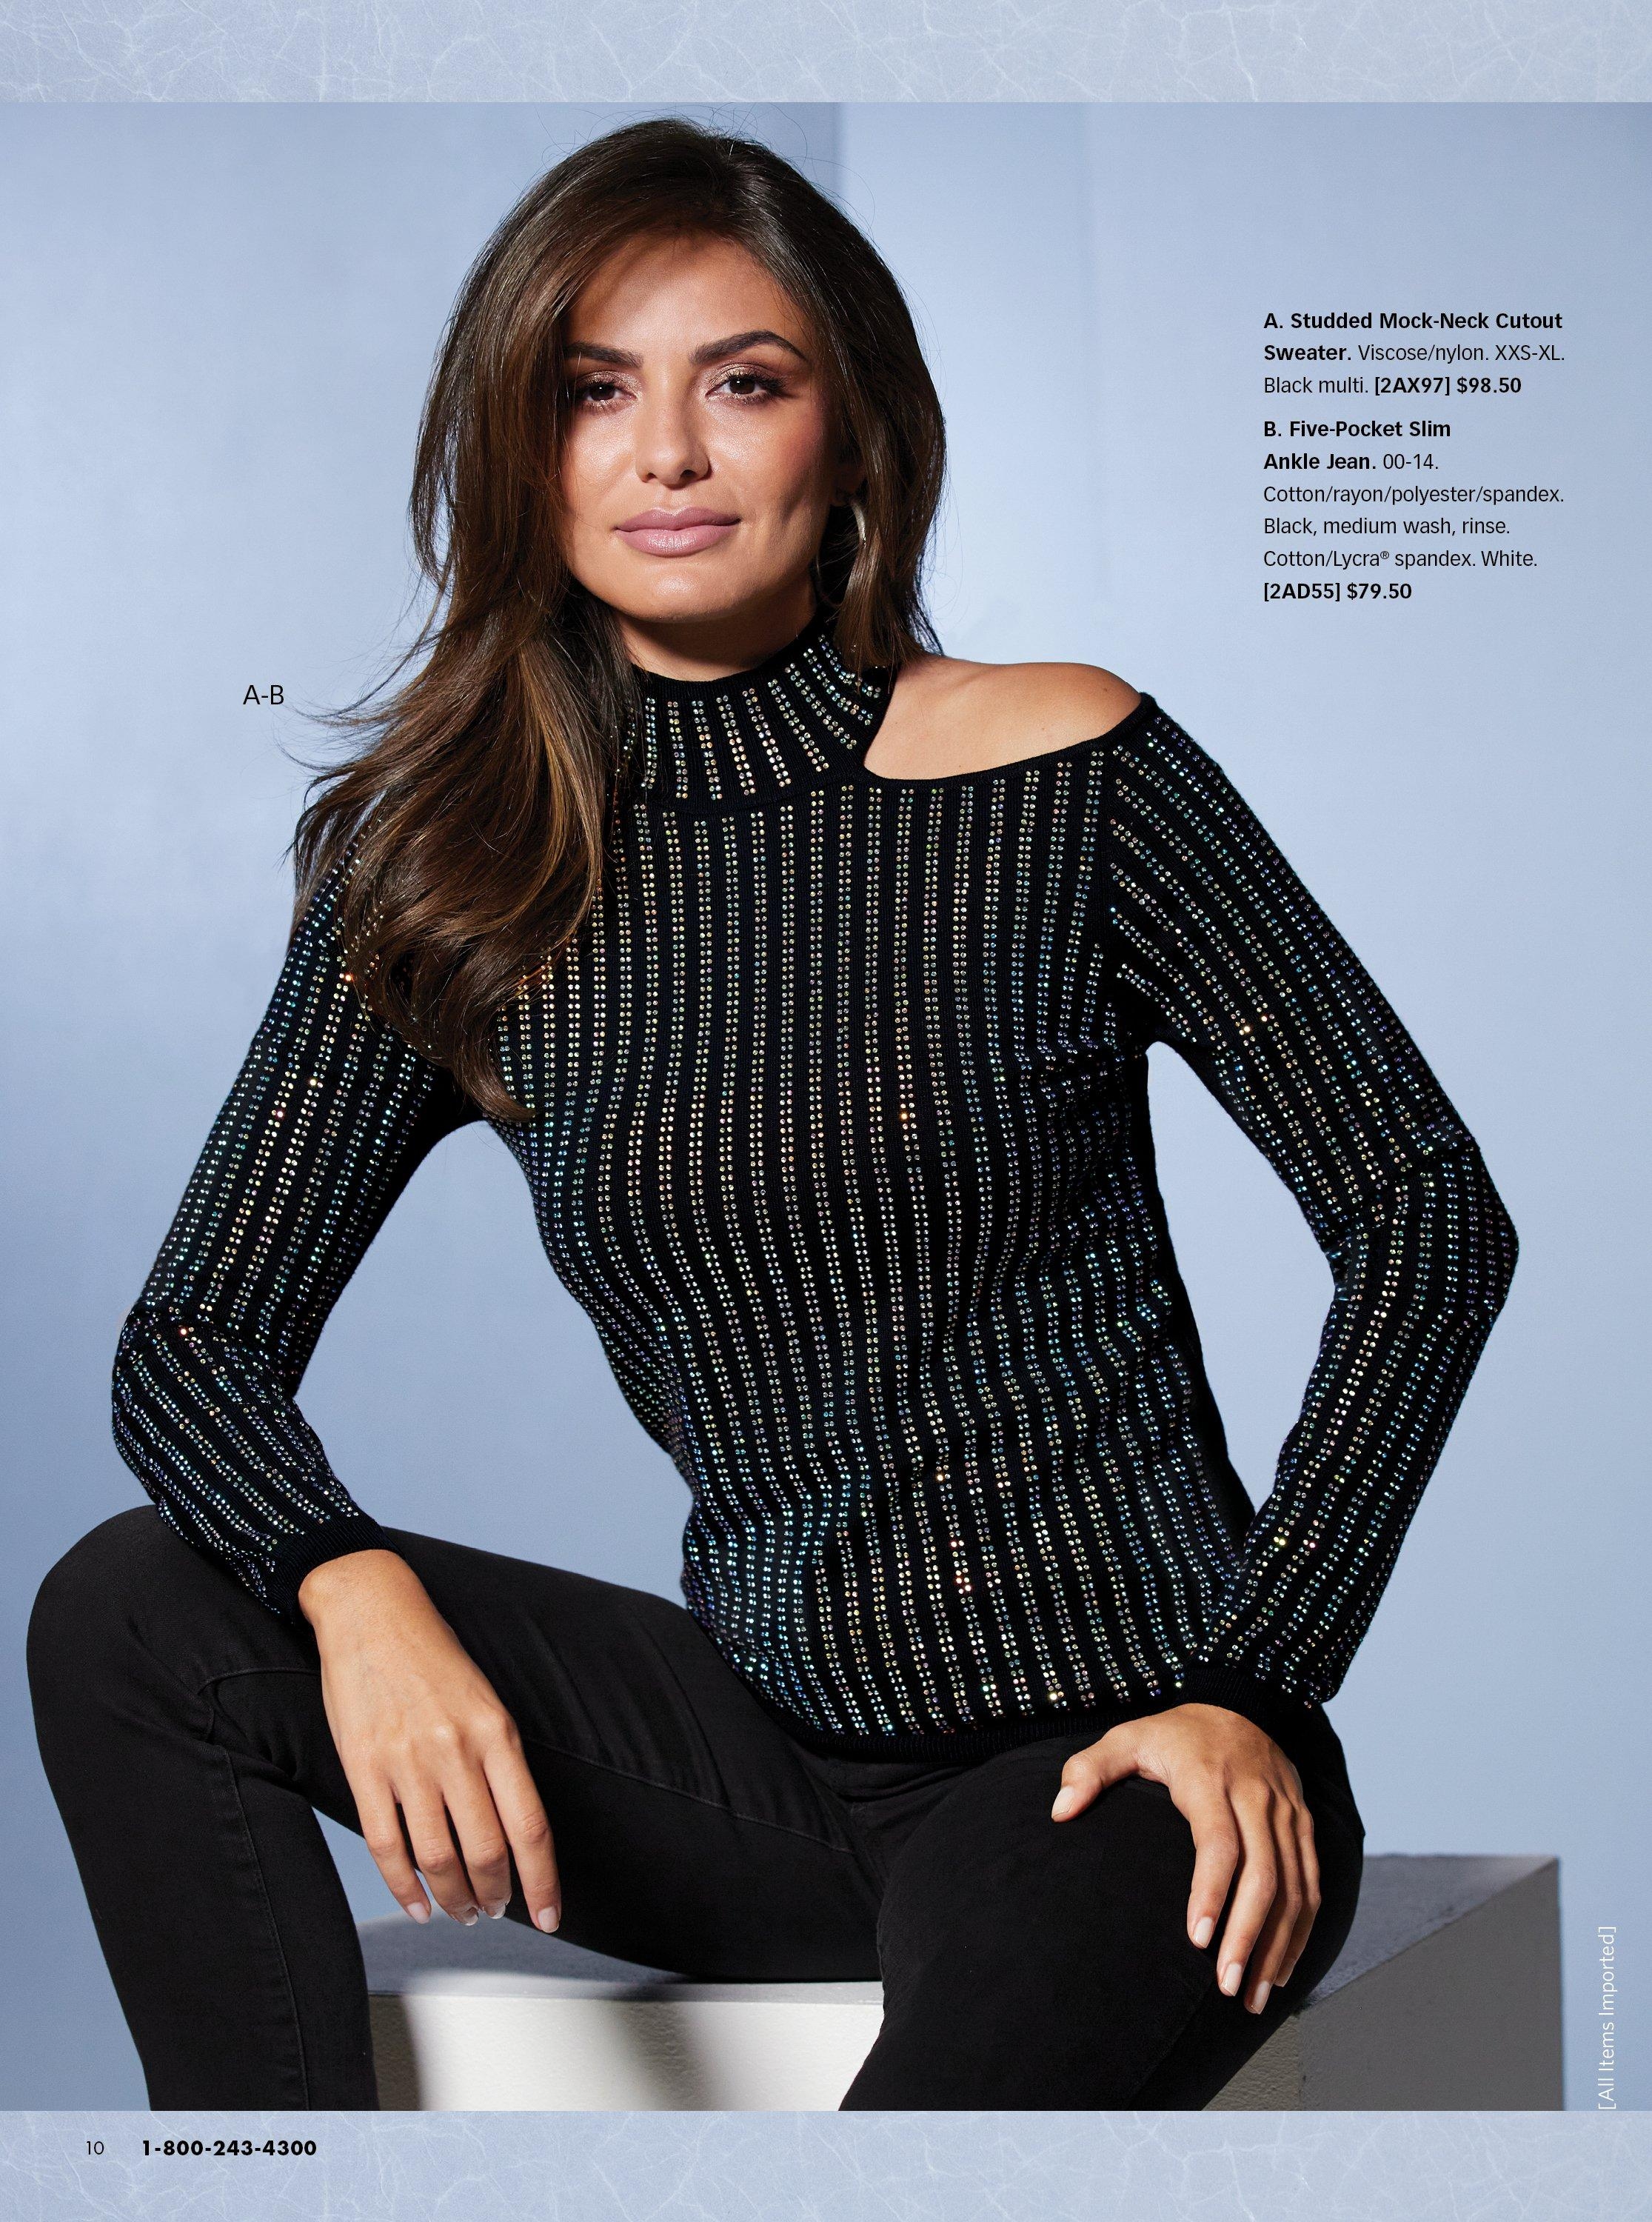 model wearing a black studded mock-neck cold-shoulder long sleeve top and black pants.